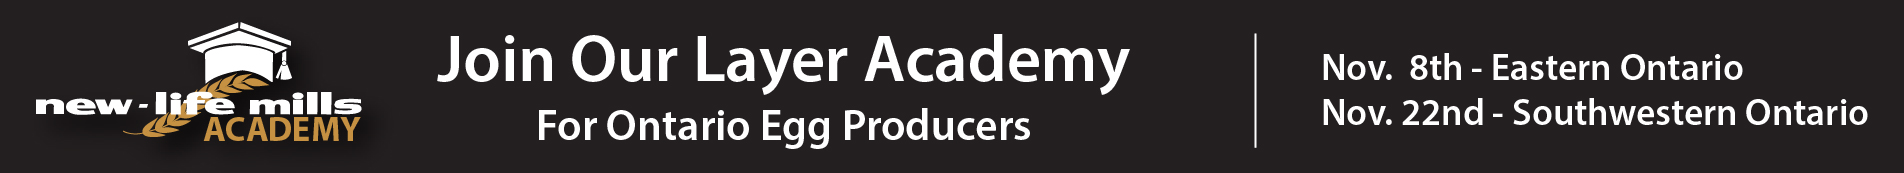 layer academy top banner ad-01